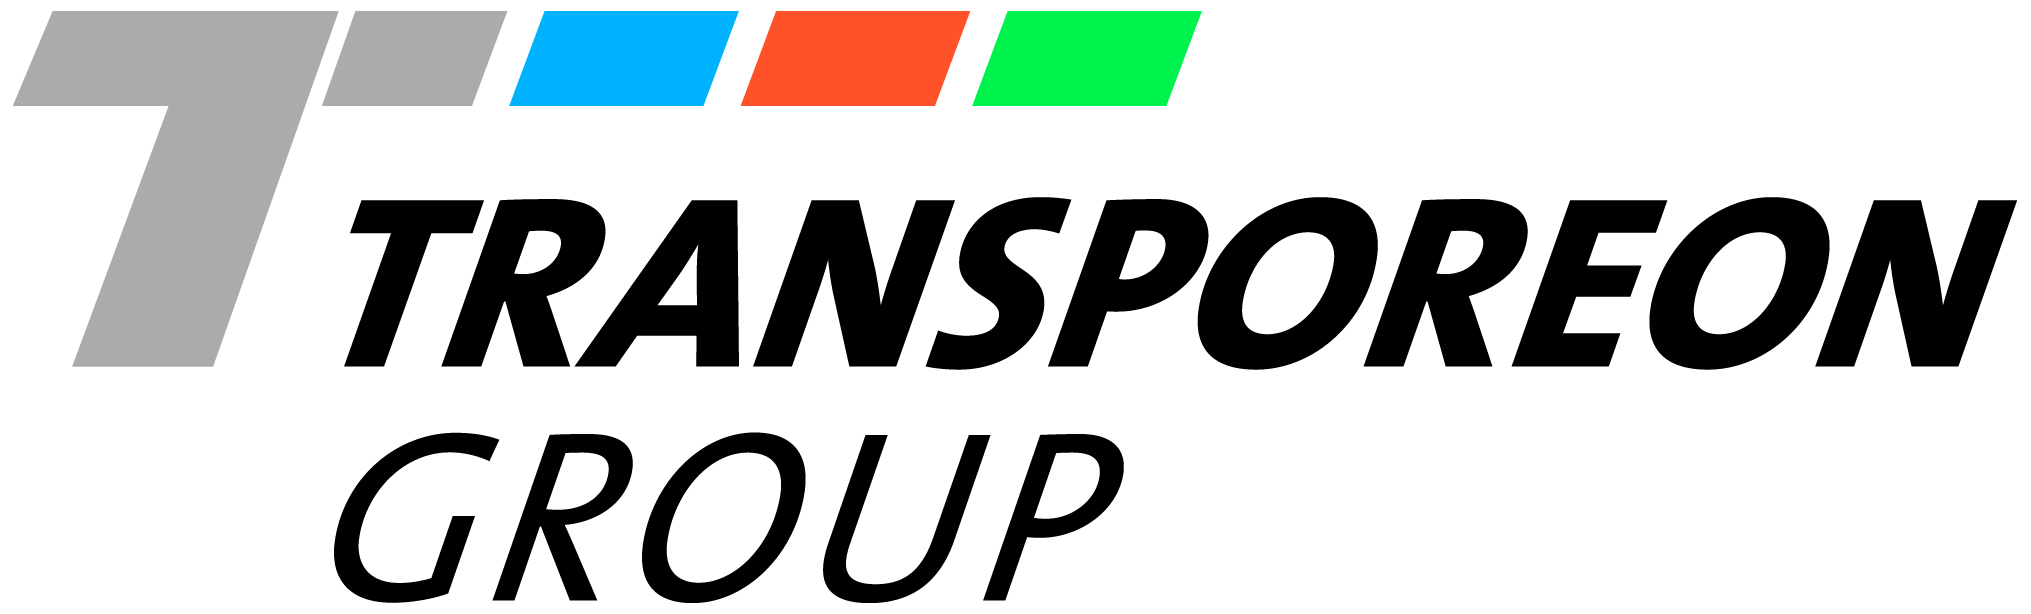 Transporeon Group Americas Inc Azlogistics Com